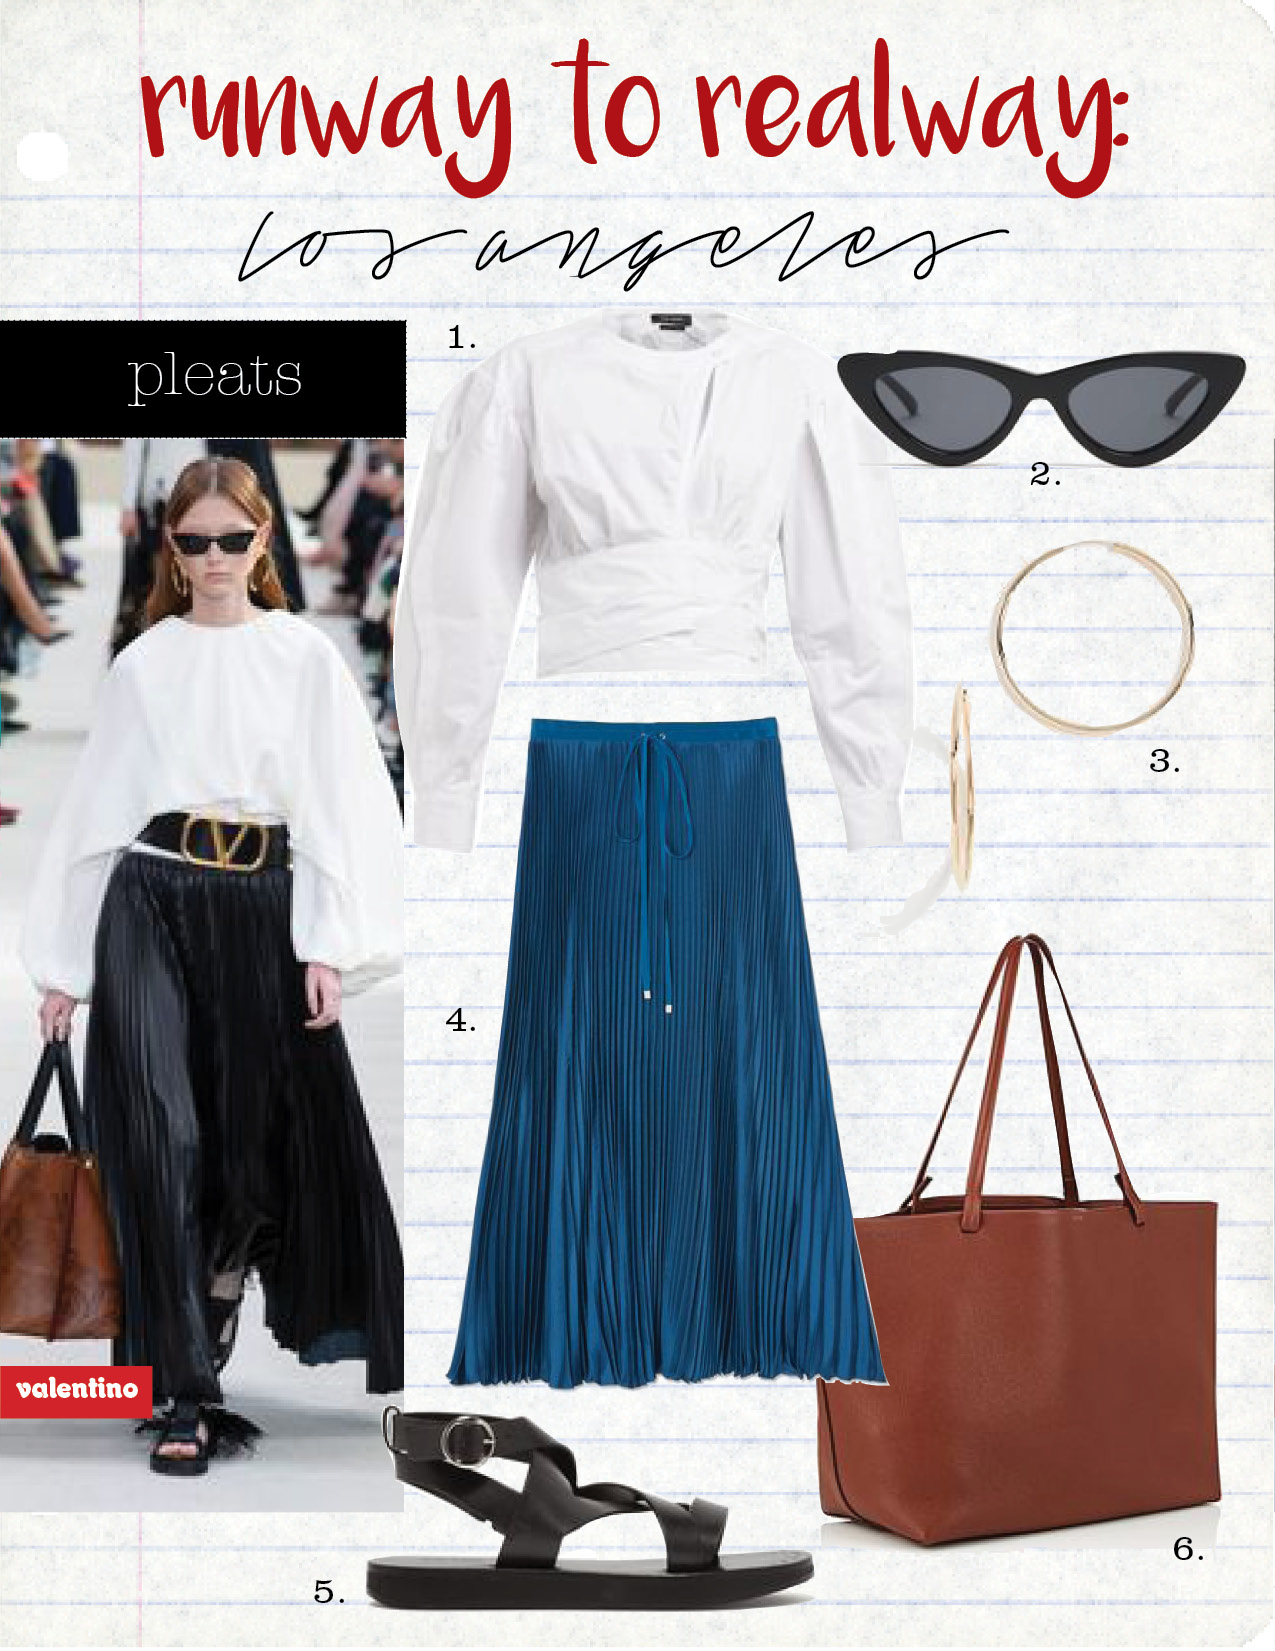 1. Isabel Marant cut-out cotton top, $515,  matchesfashion.com  2. le specs the last lolita cat-eye sunglasses, $80,  matchesfashion.com  3. shashi samantha small hoop earrings, $46,  shopbop.com  4. tibi mendini twill pleated skirt, $595,  goop.com  5. Isabel Marant noelly leather sandals, $680,  matchesfashion.com  6. the row park leather tote bag, $1790,  barneys.com